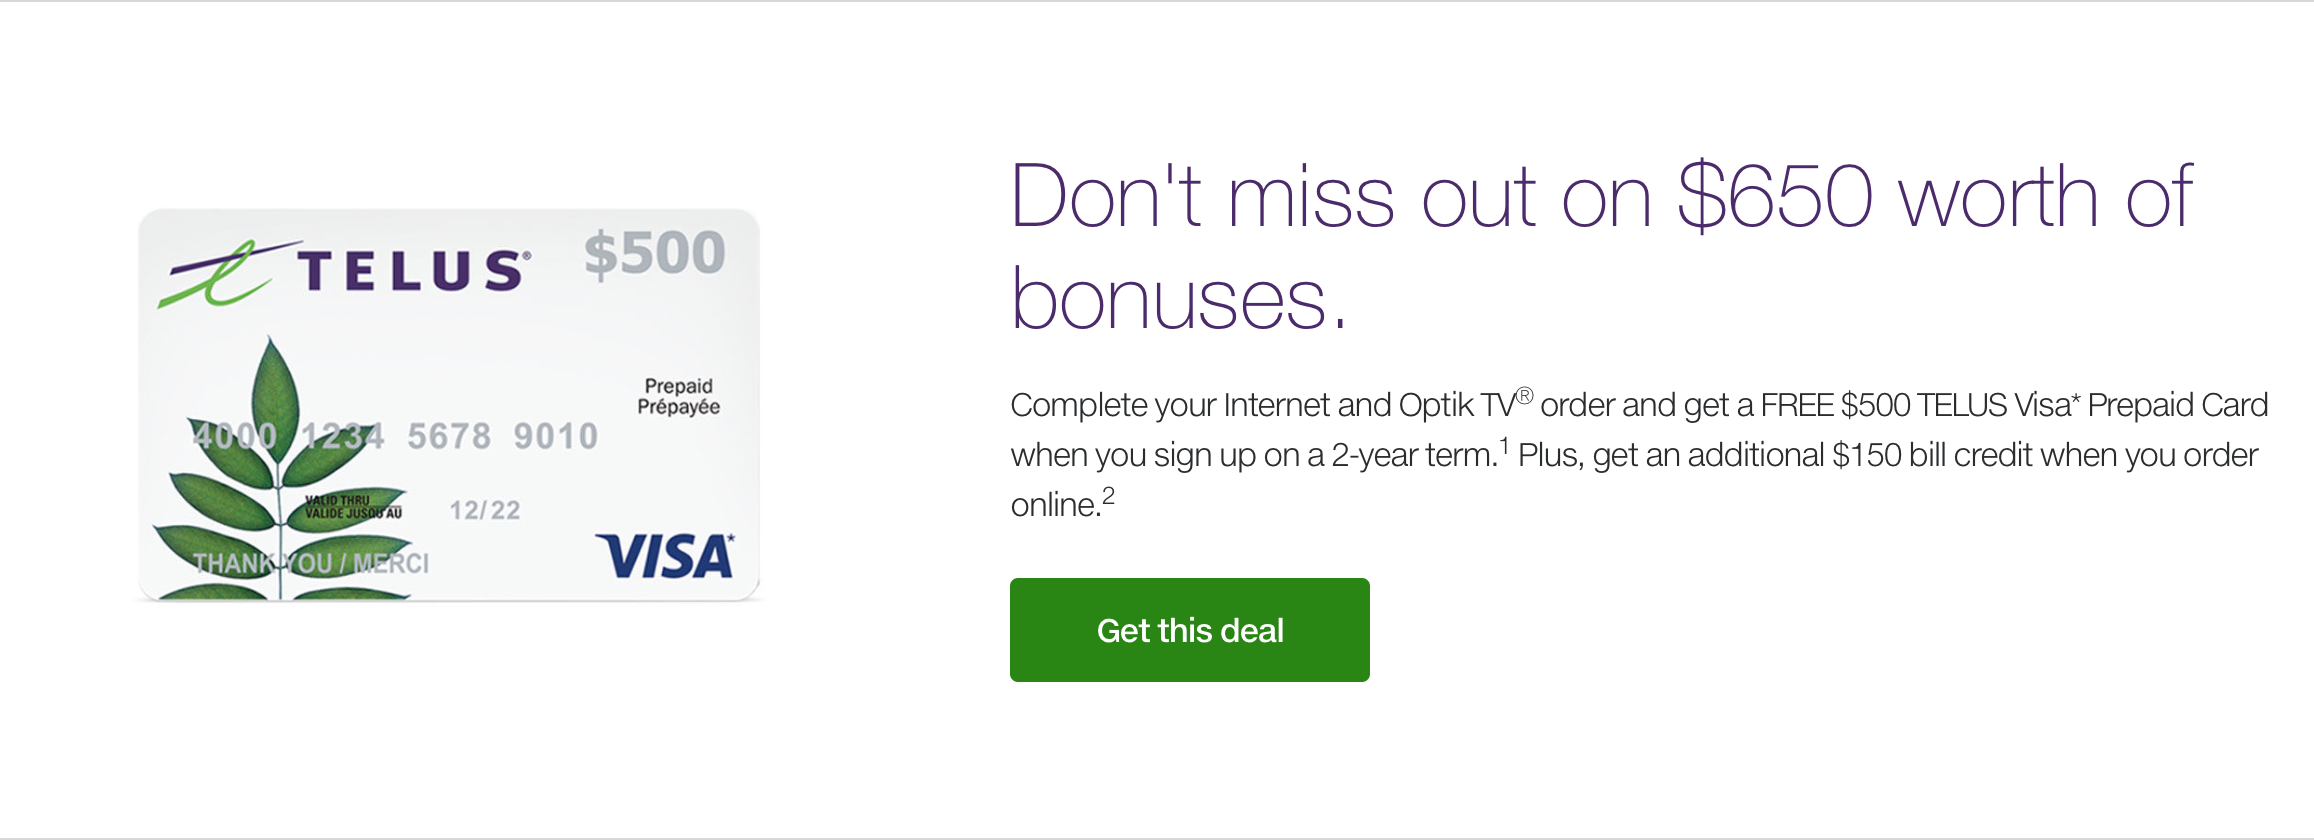 More than one TV? Try Optik TV.